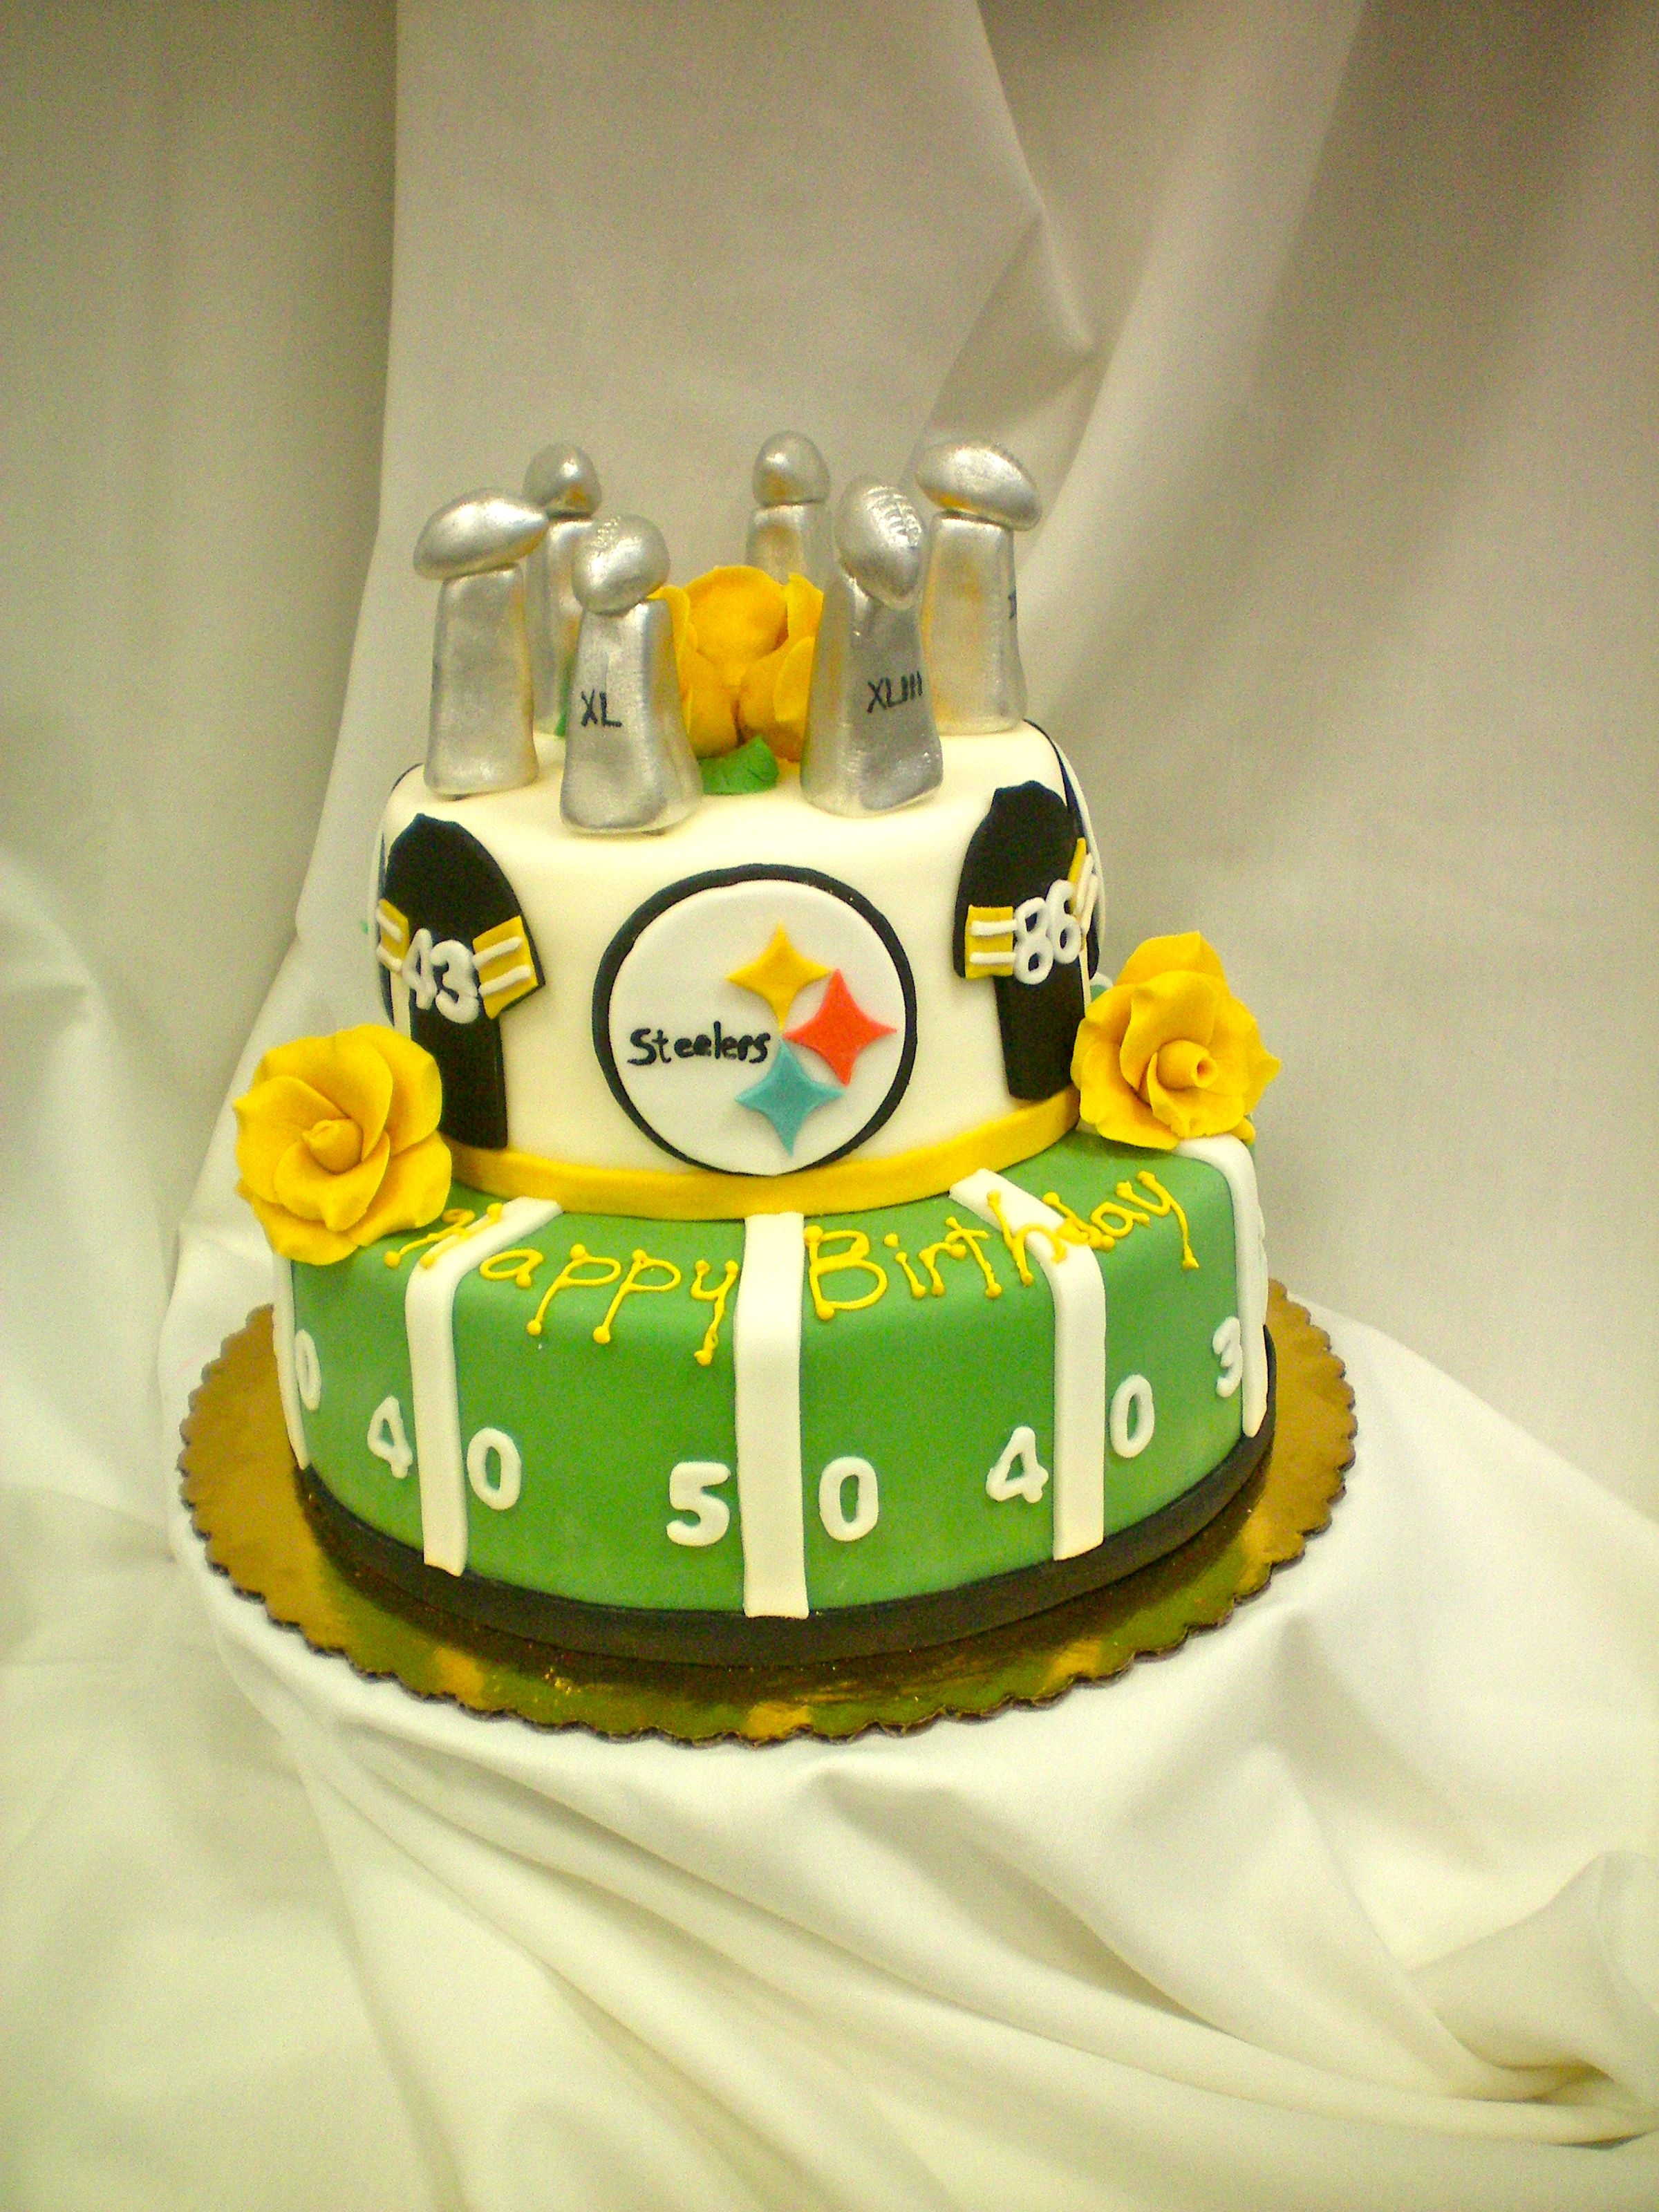 Steelers Cake | Things for My Wall | Pinterest | Cake, Pittsburgh ...